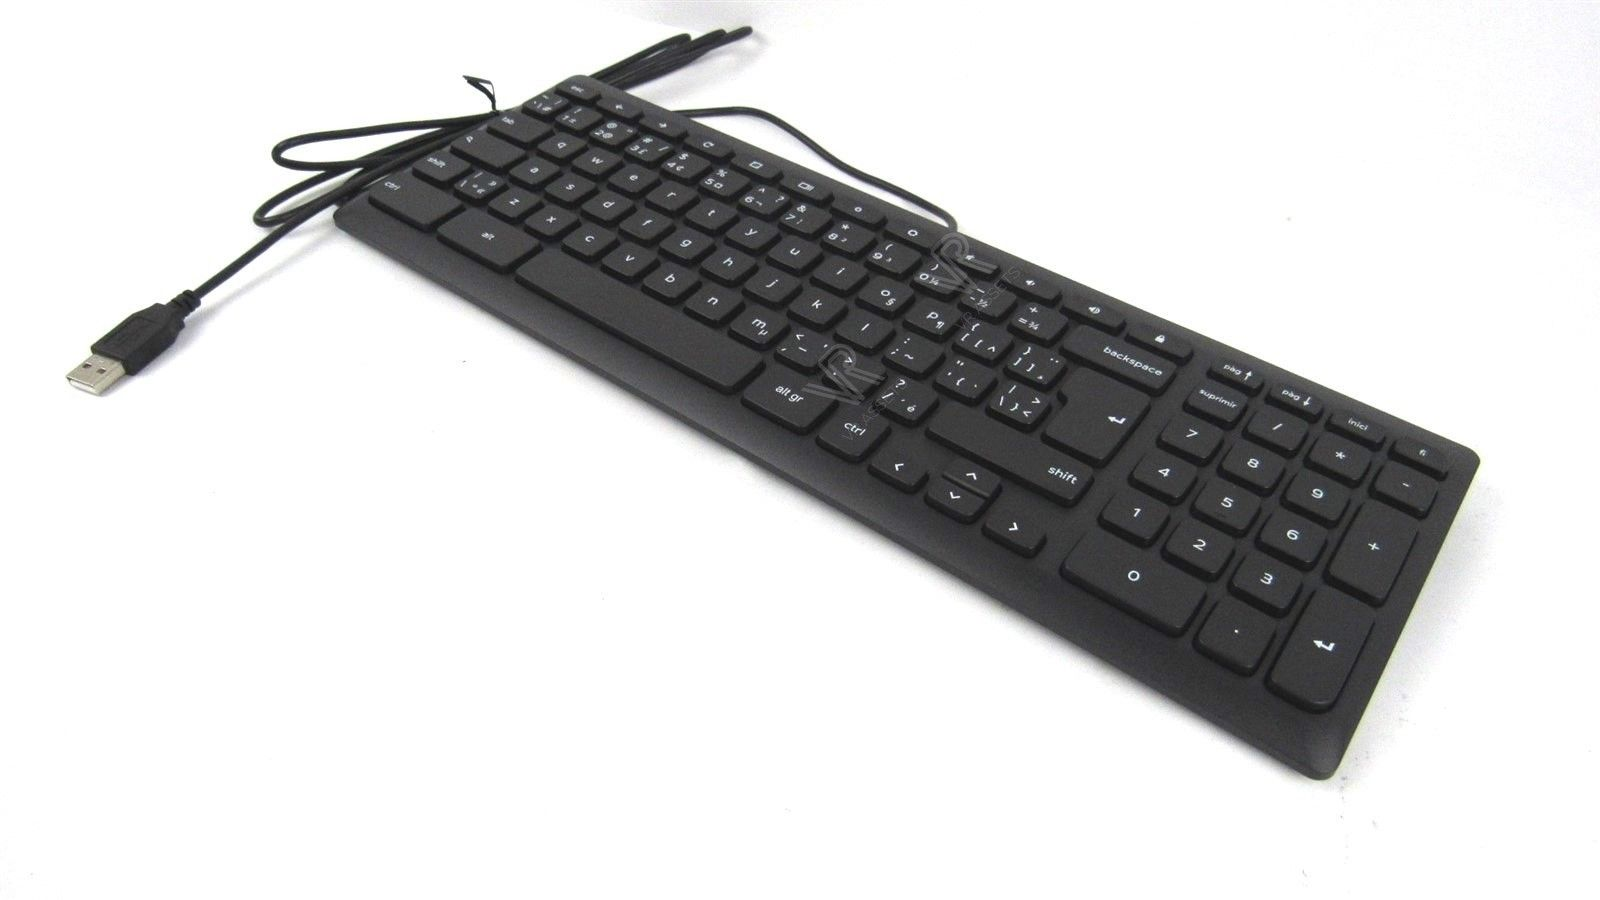 Dell USB Slim Wired Multimedia Keyboard for Google Chrome KB69211 KV8MM 0KV8MM